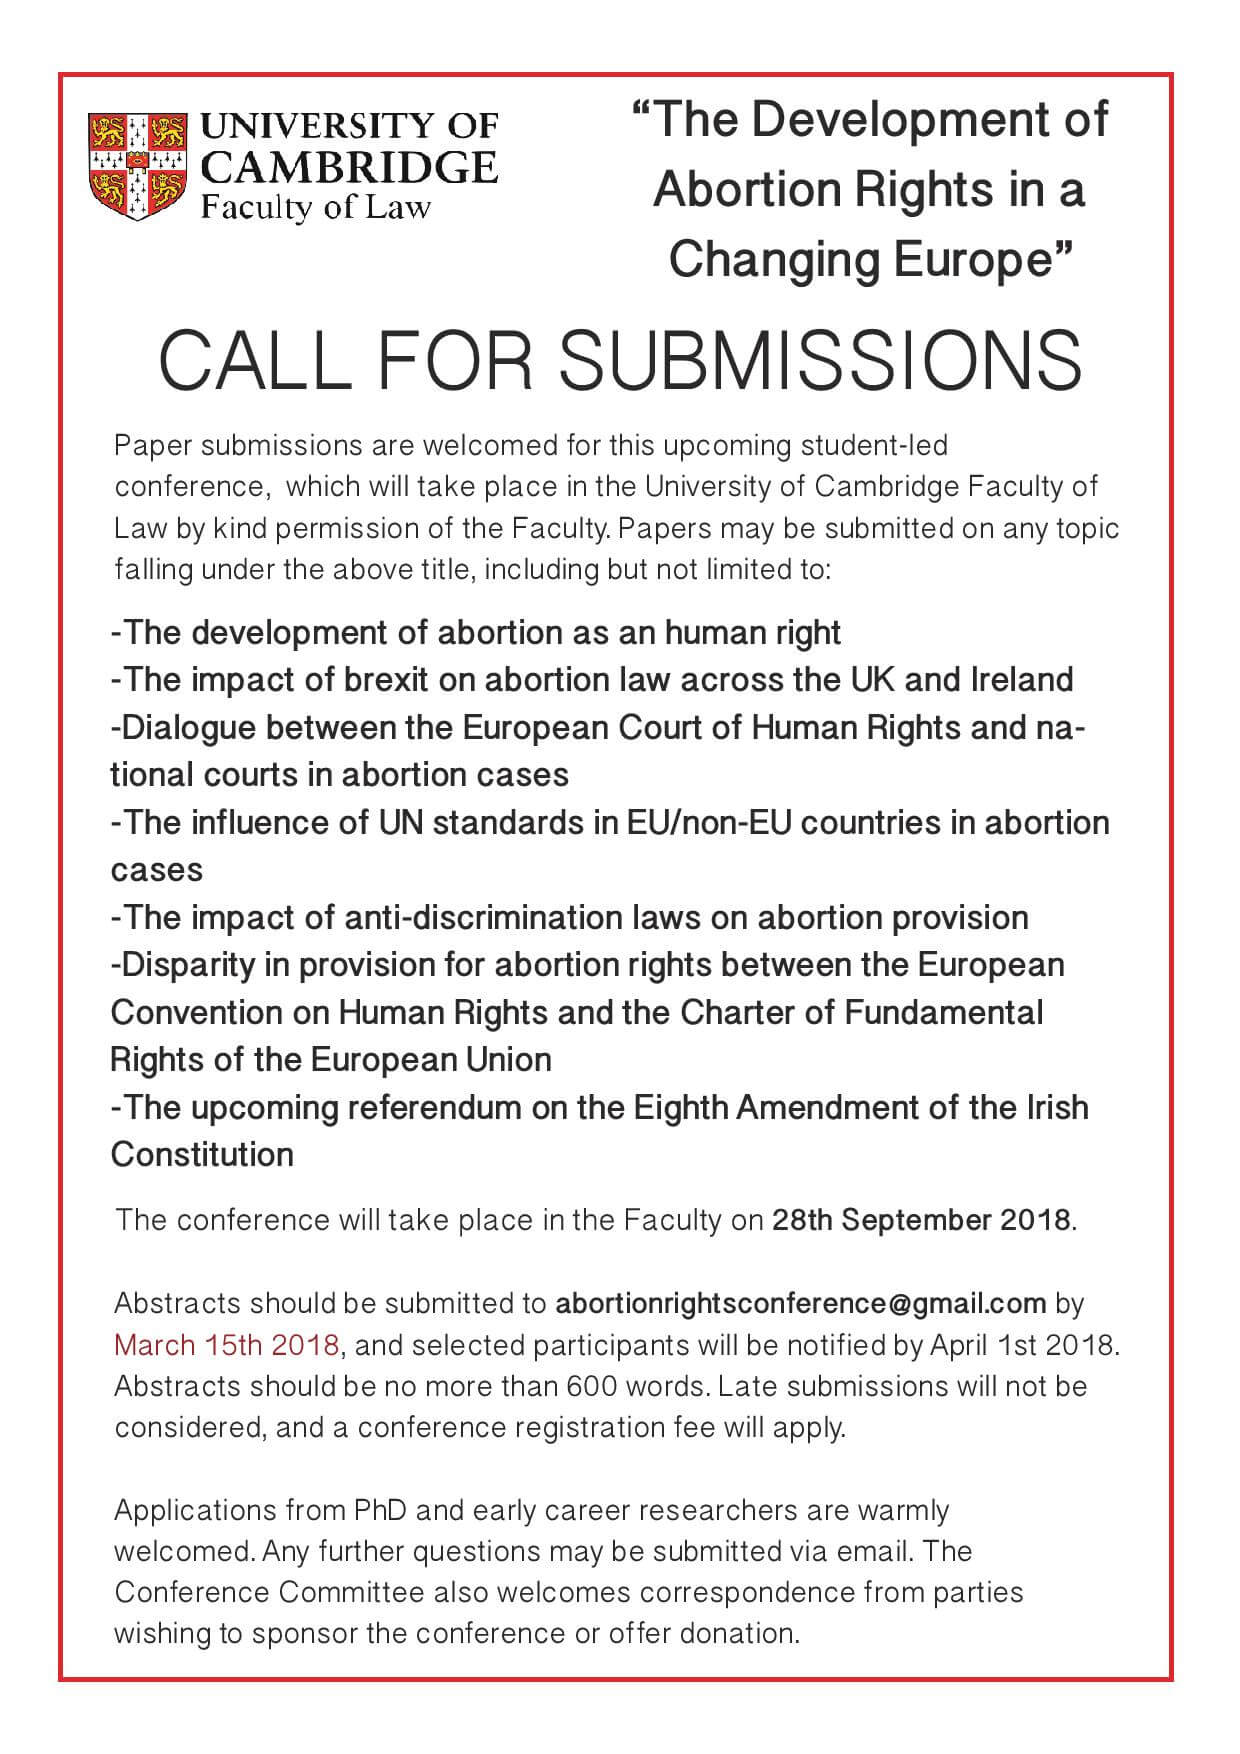 Call for Papers: The Development of Abortion Rights in a Changing Europe